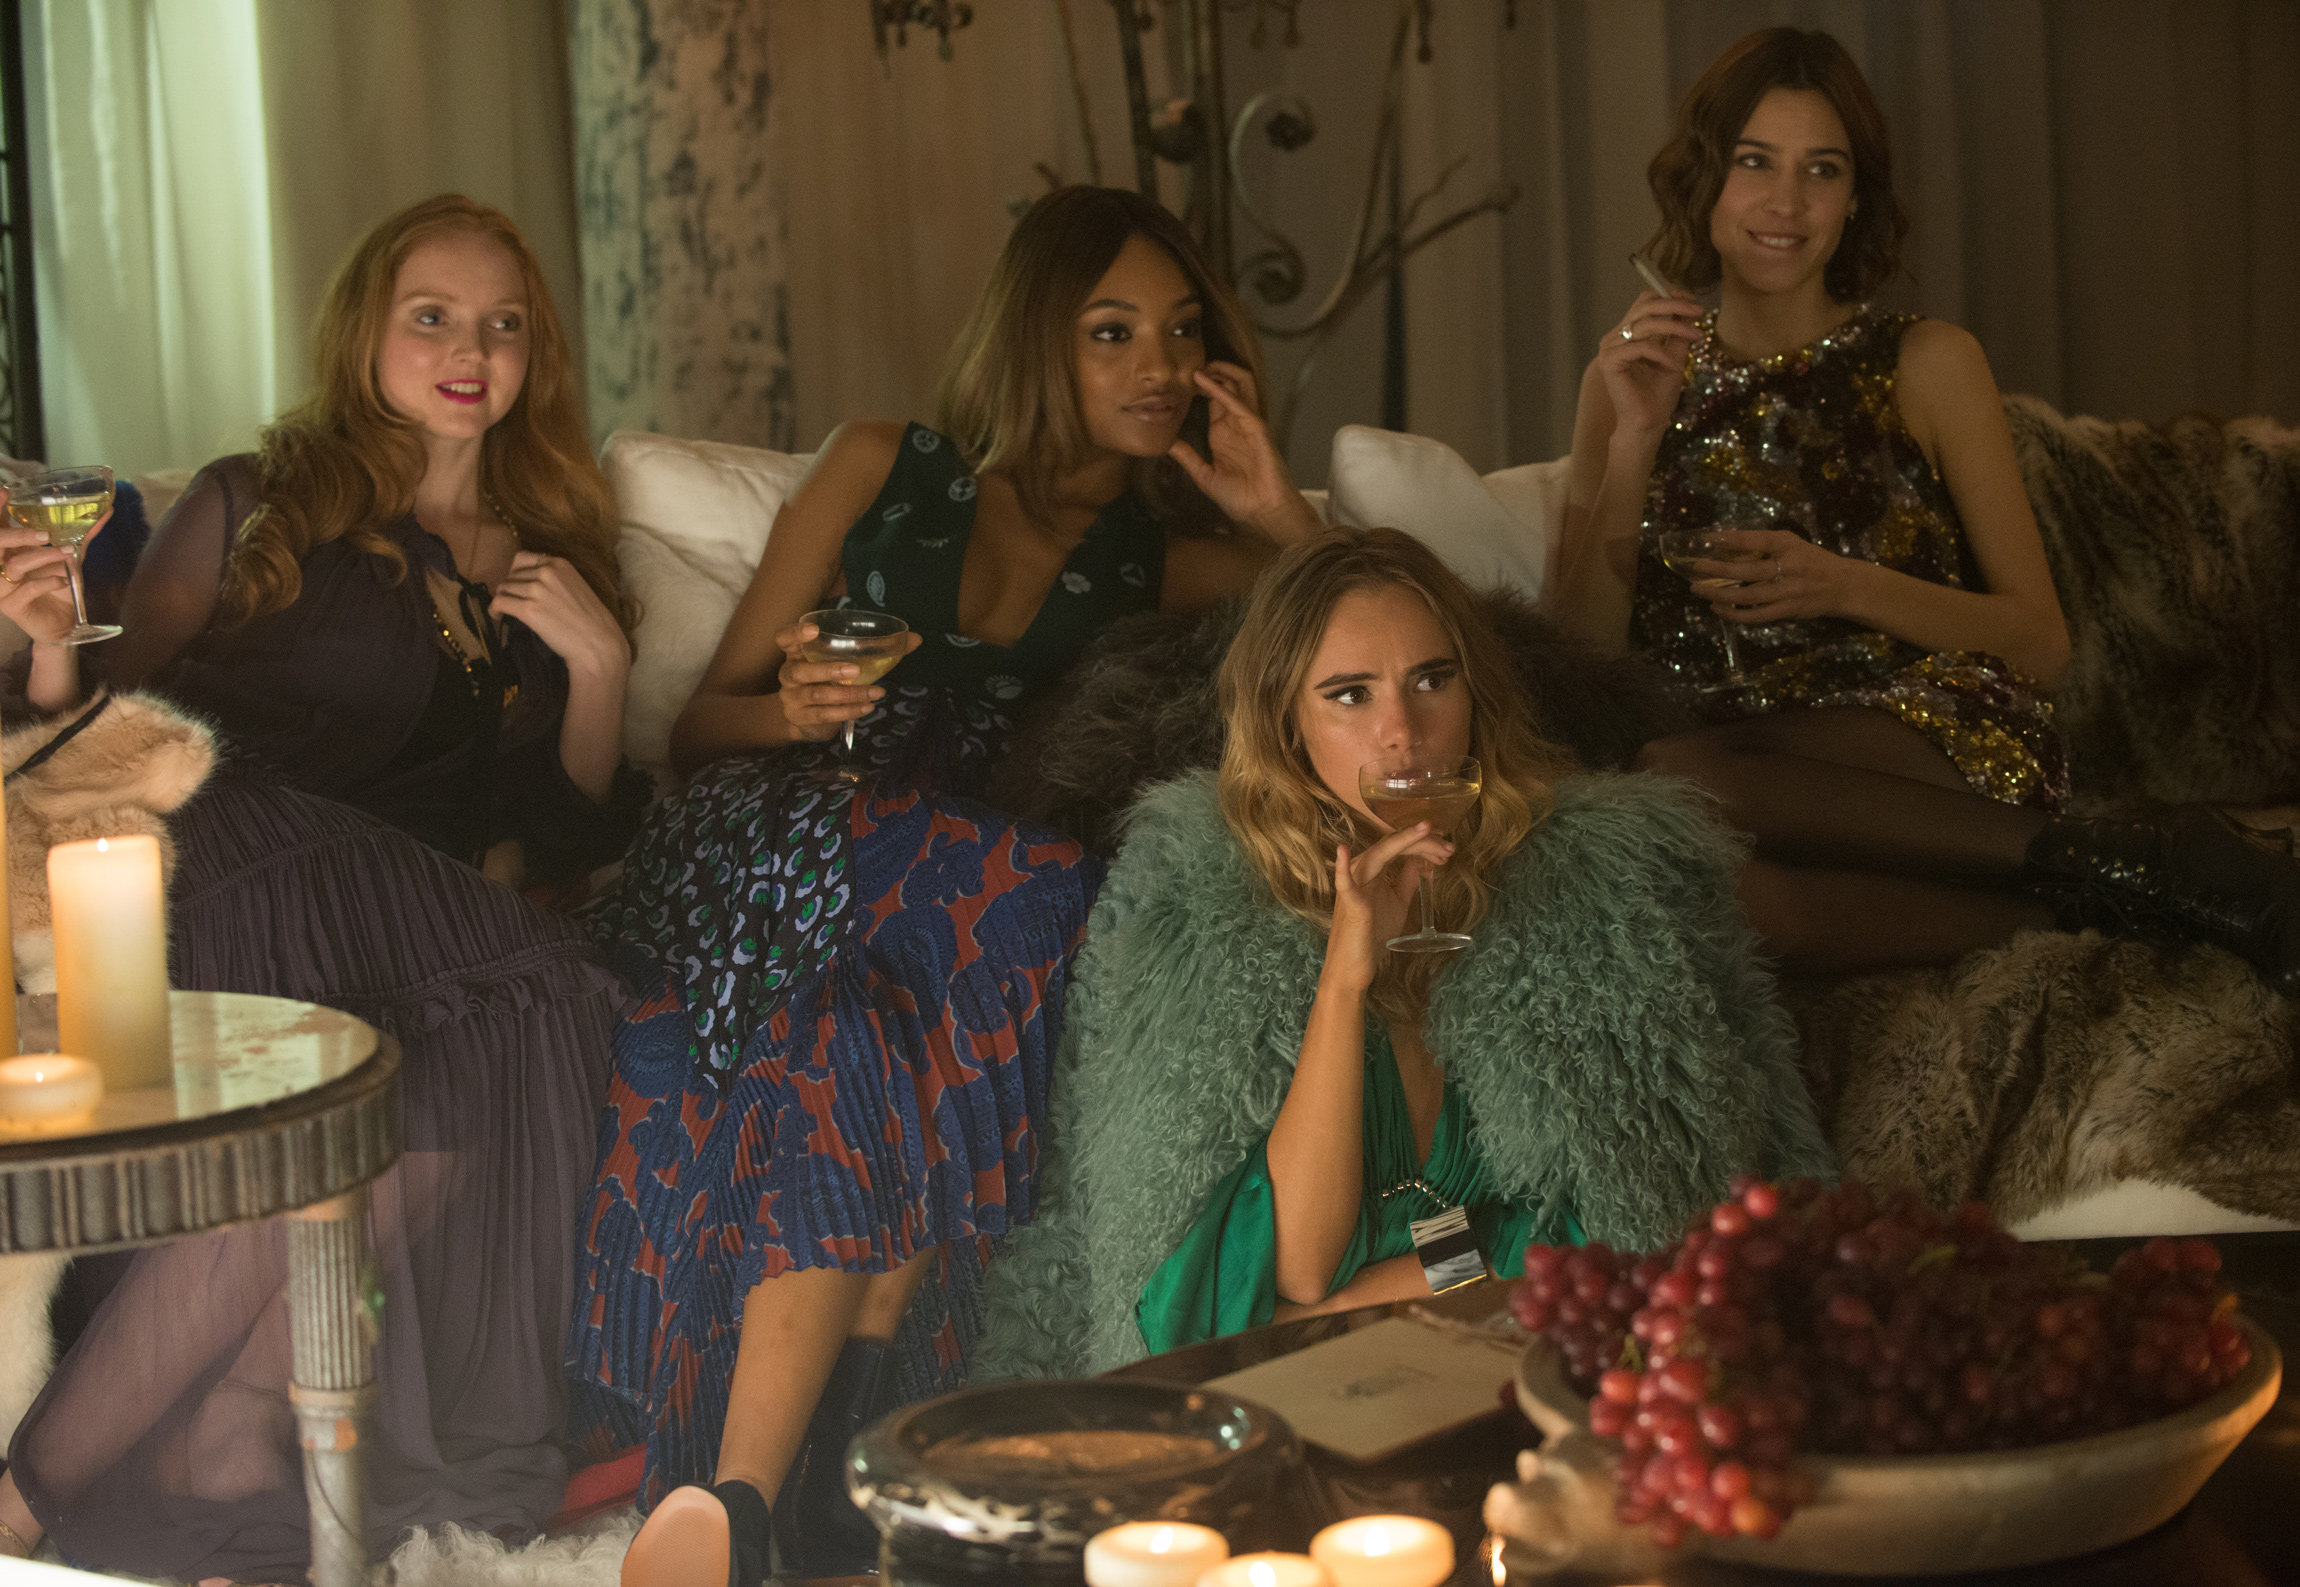 (From L-R) Lily Cole as herself, Jourdan Dunn as herself, Suki Waterhouse as herself, and Alexa Chung as herself in the film ABSOLUTELY FABULOUS: THE MOVIE. Photo by David Appleby. © 2016 Twentieth Century Fox Film Corporation All Rights Reserved